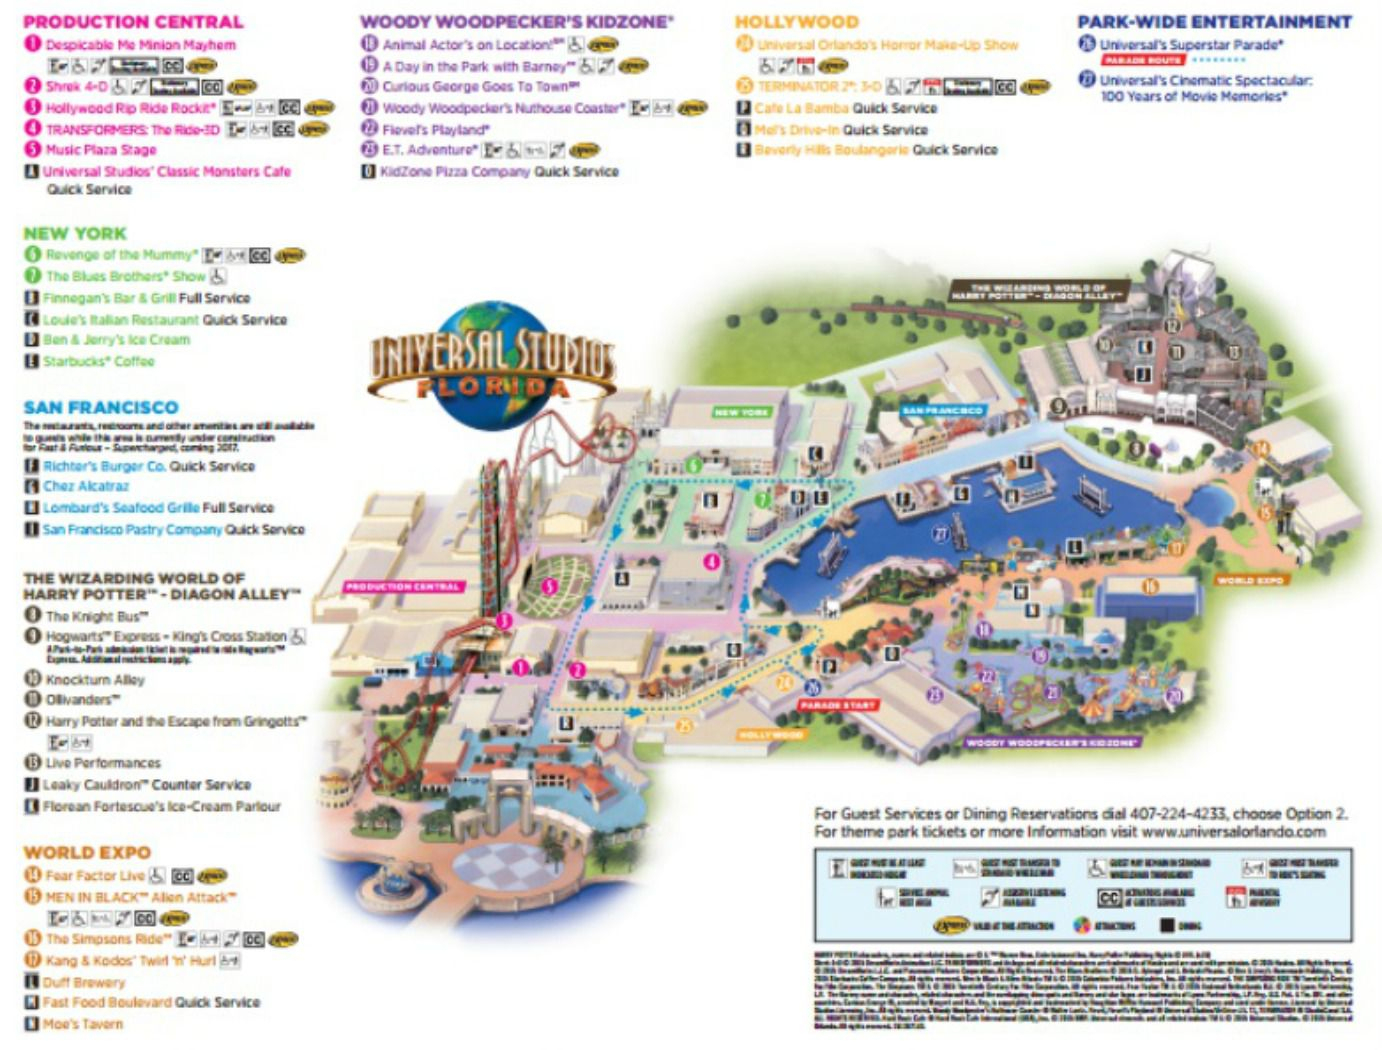 Maps Of Universal Orlando Resort's Parks And Hotels - Map Of Universal Florida Hotels